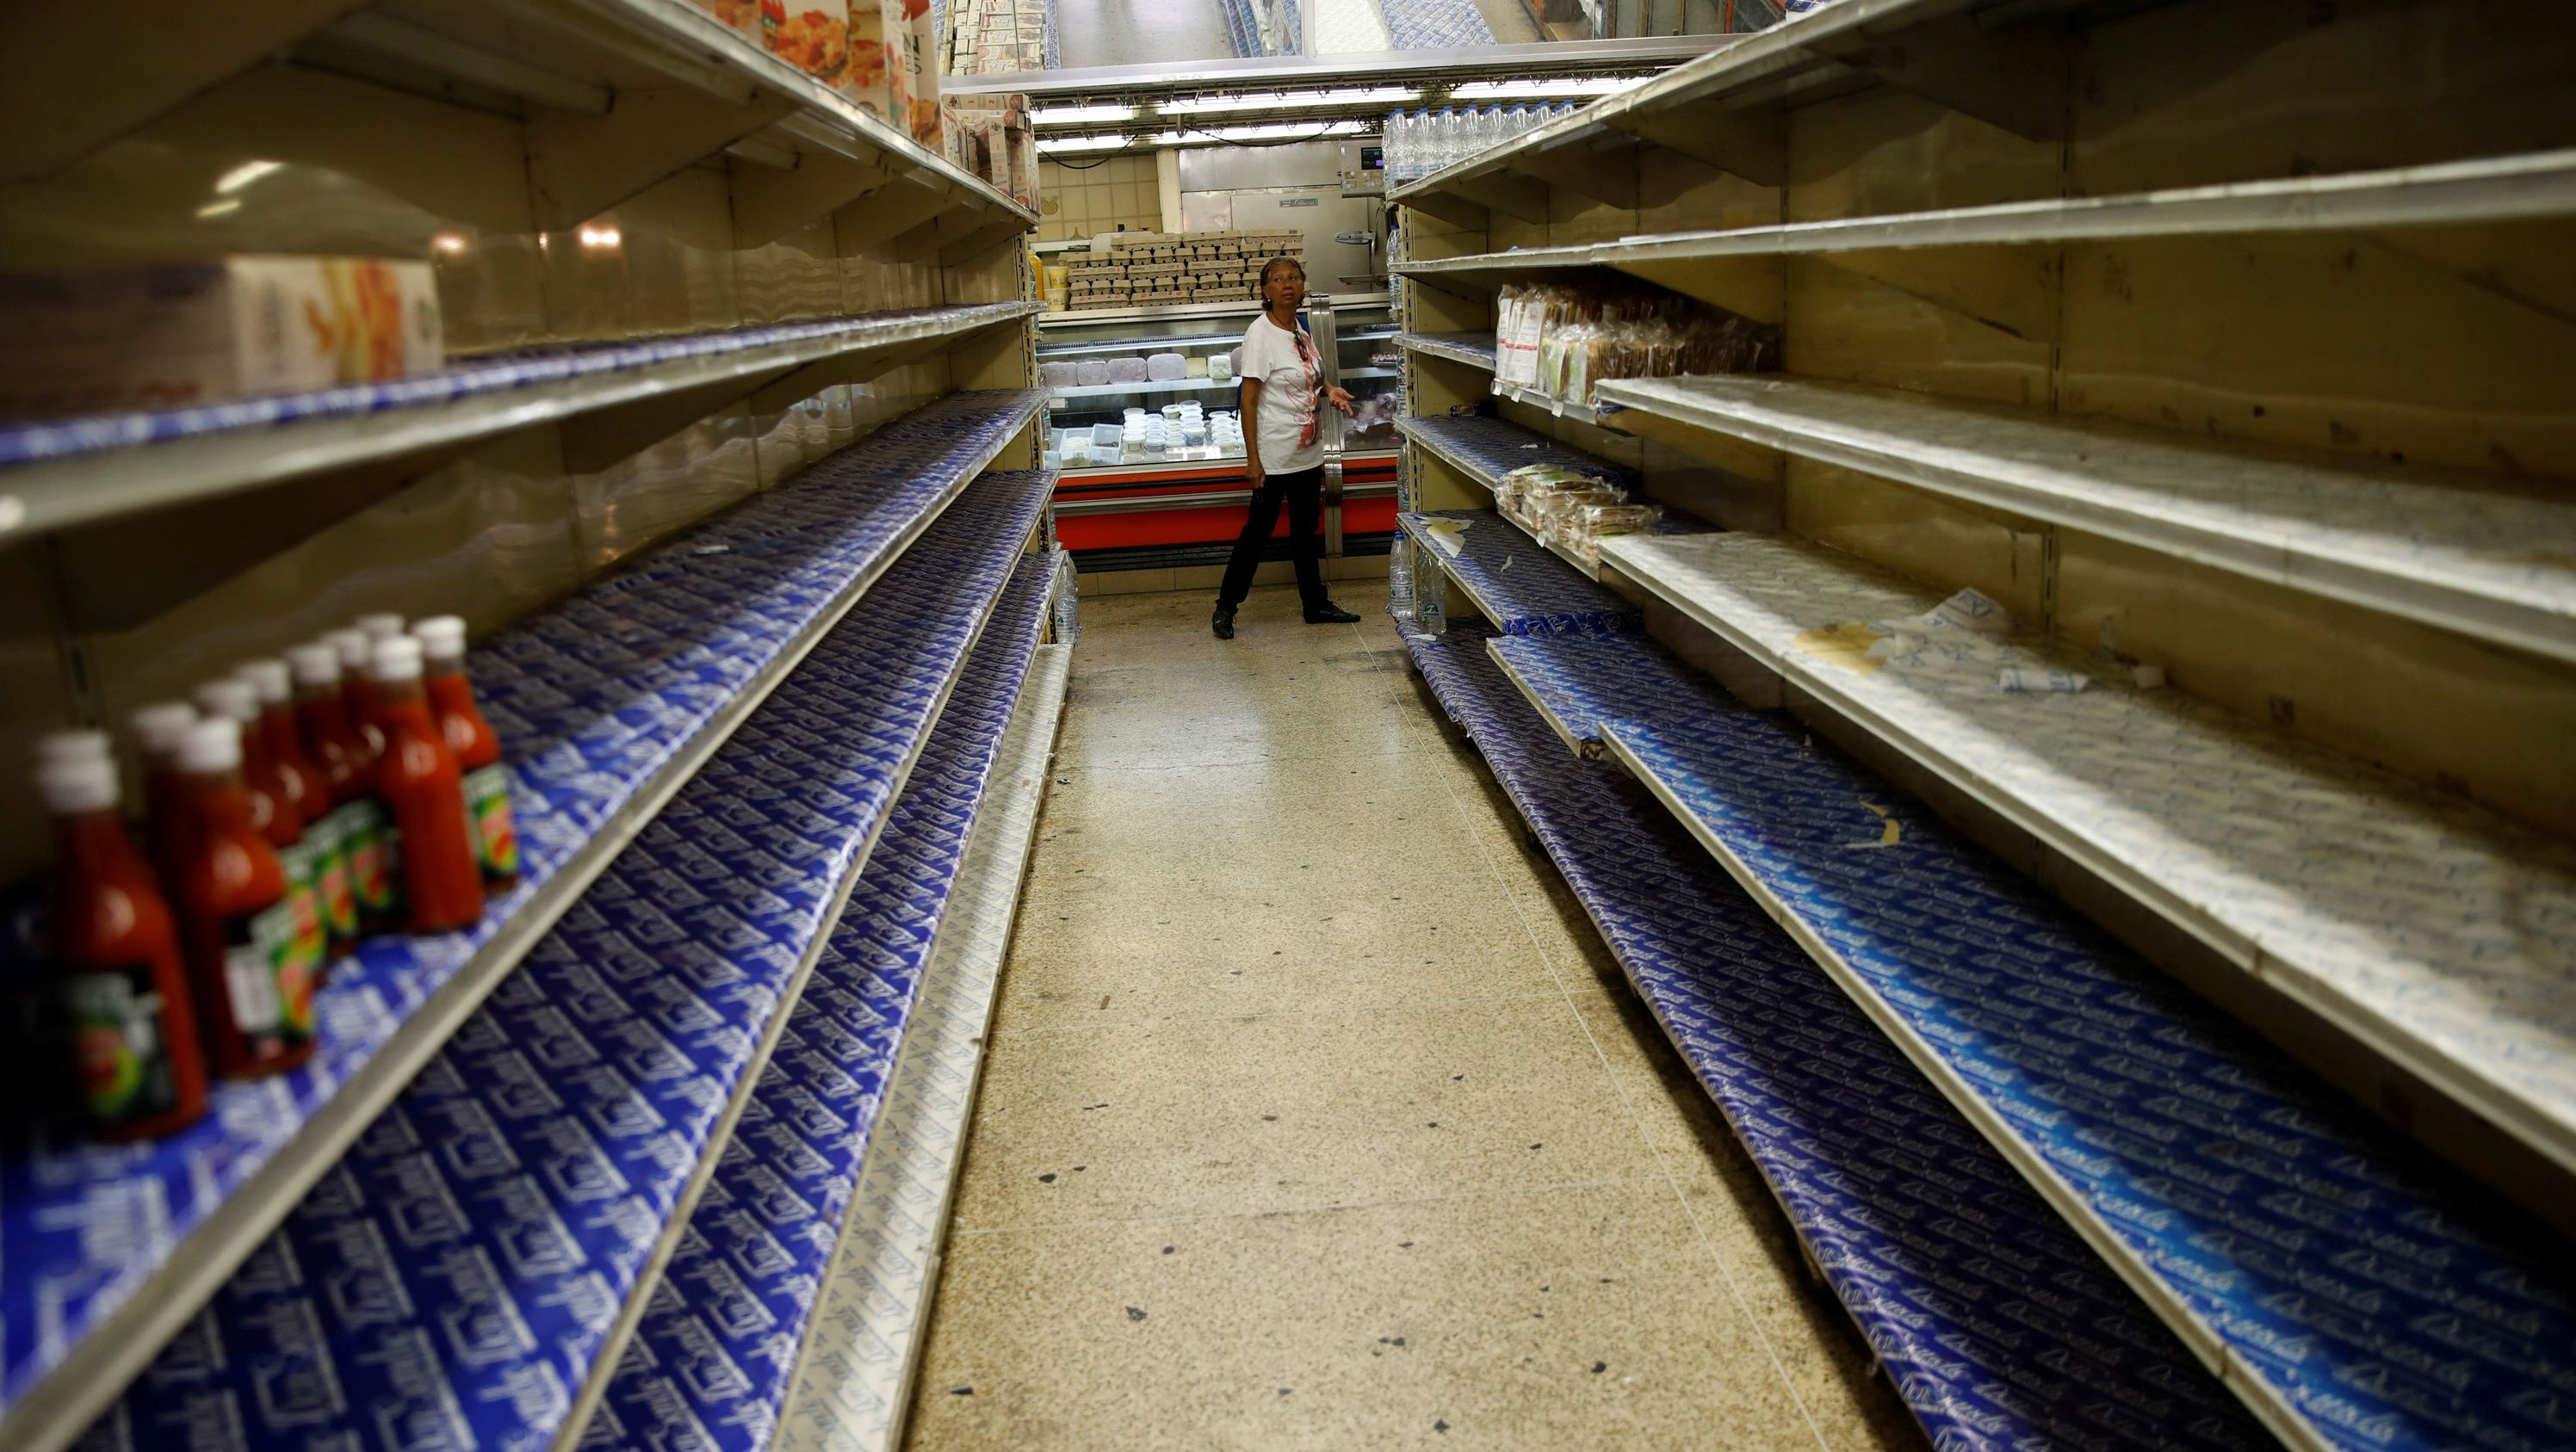 A woman looks at the almost empty shelves while she looks for groceries and goods in a supermarket in Caracas, Venezuela March 23, 2018.